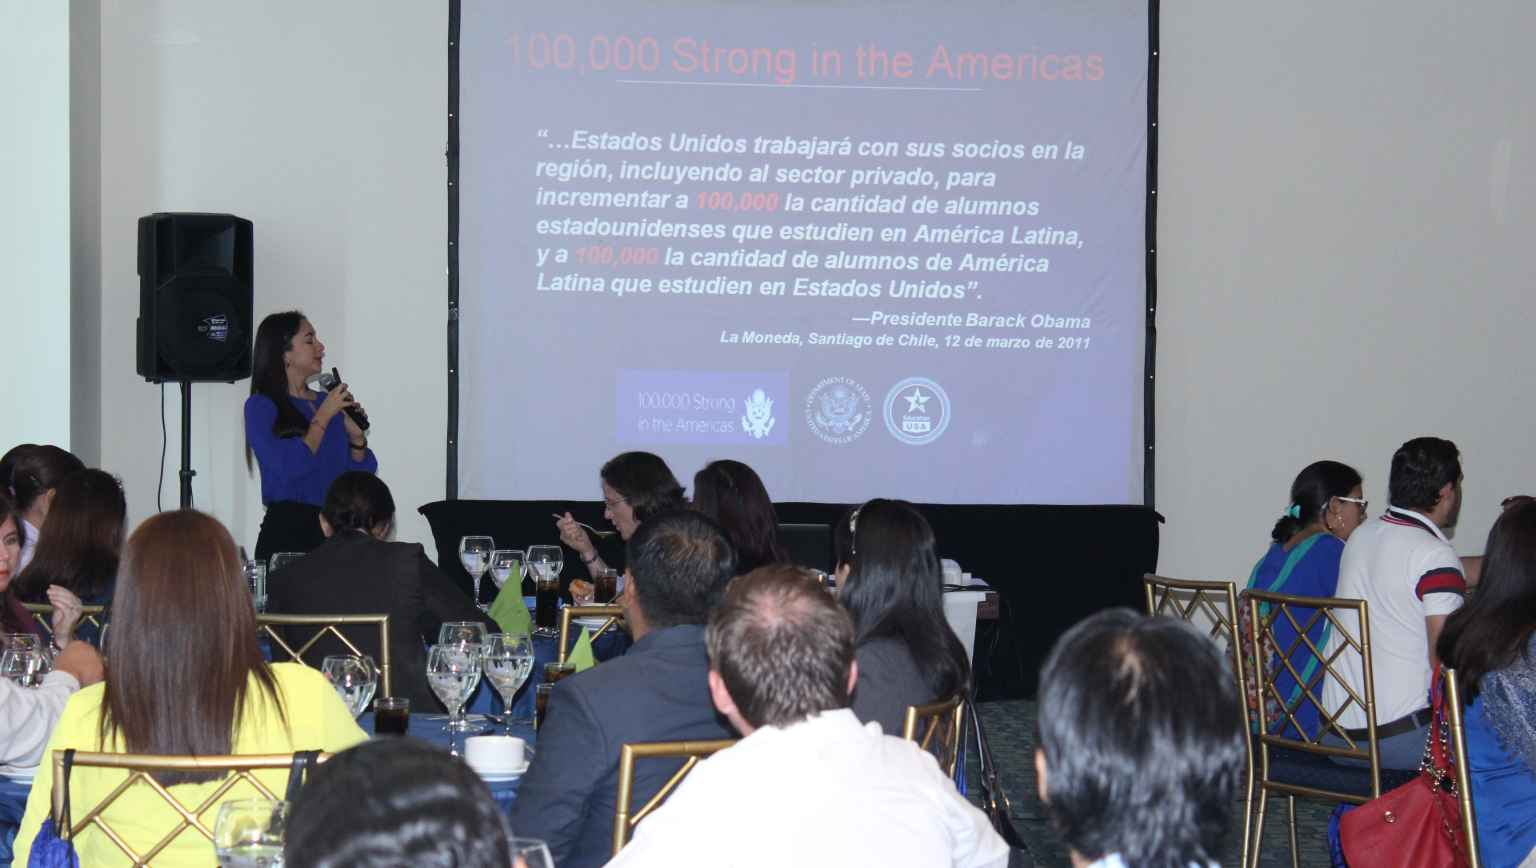 International student outreach activities conference in Guayaquil